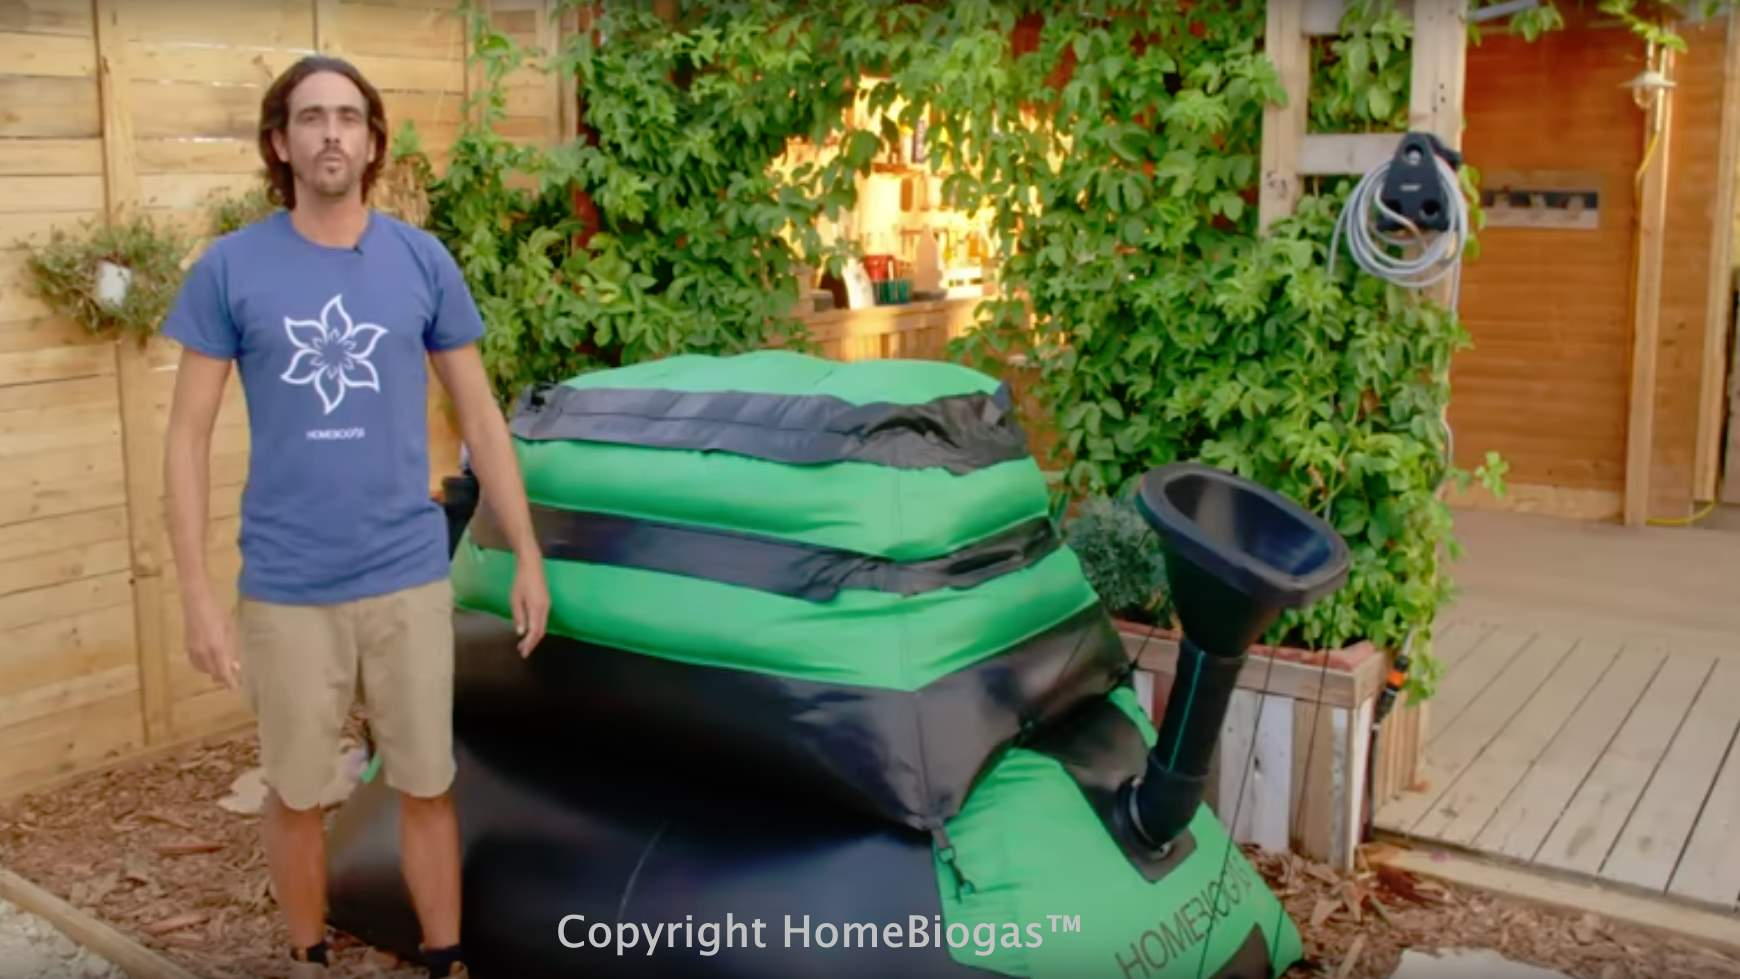 HomeBiogas™ - Turn Your Waste Into Clean Energy - Anaerobic